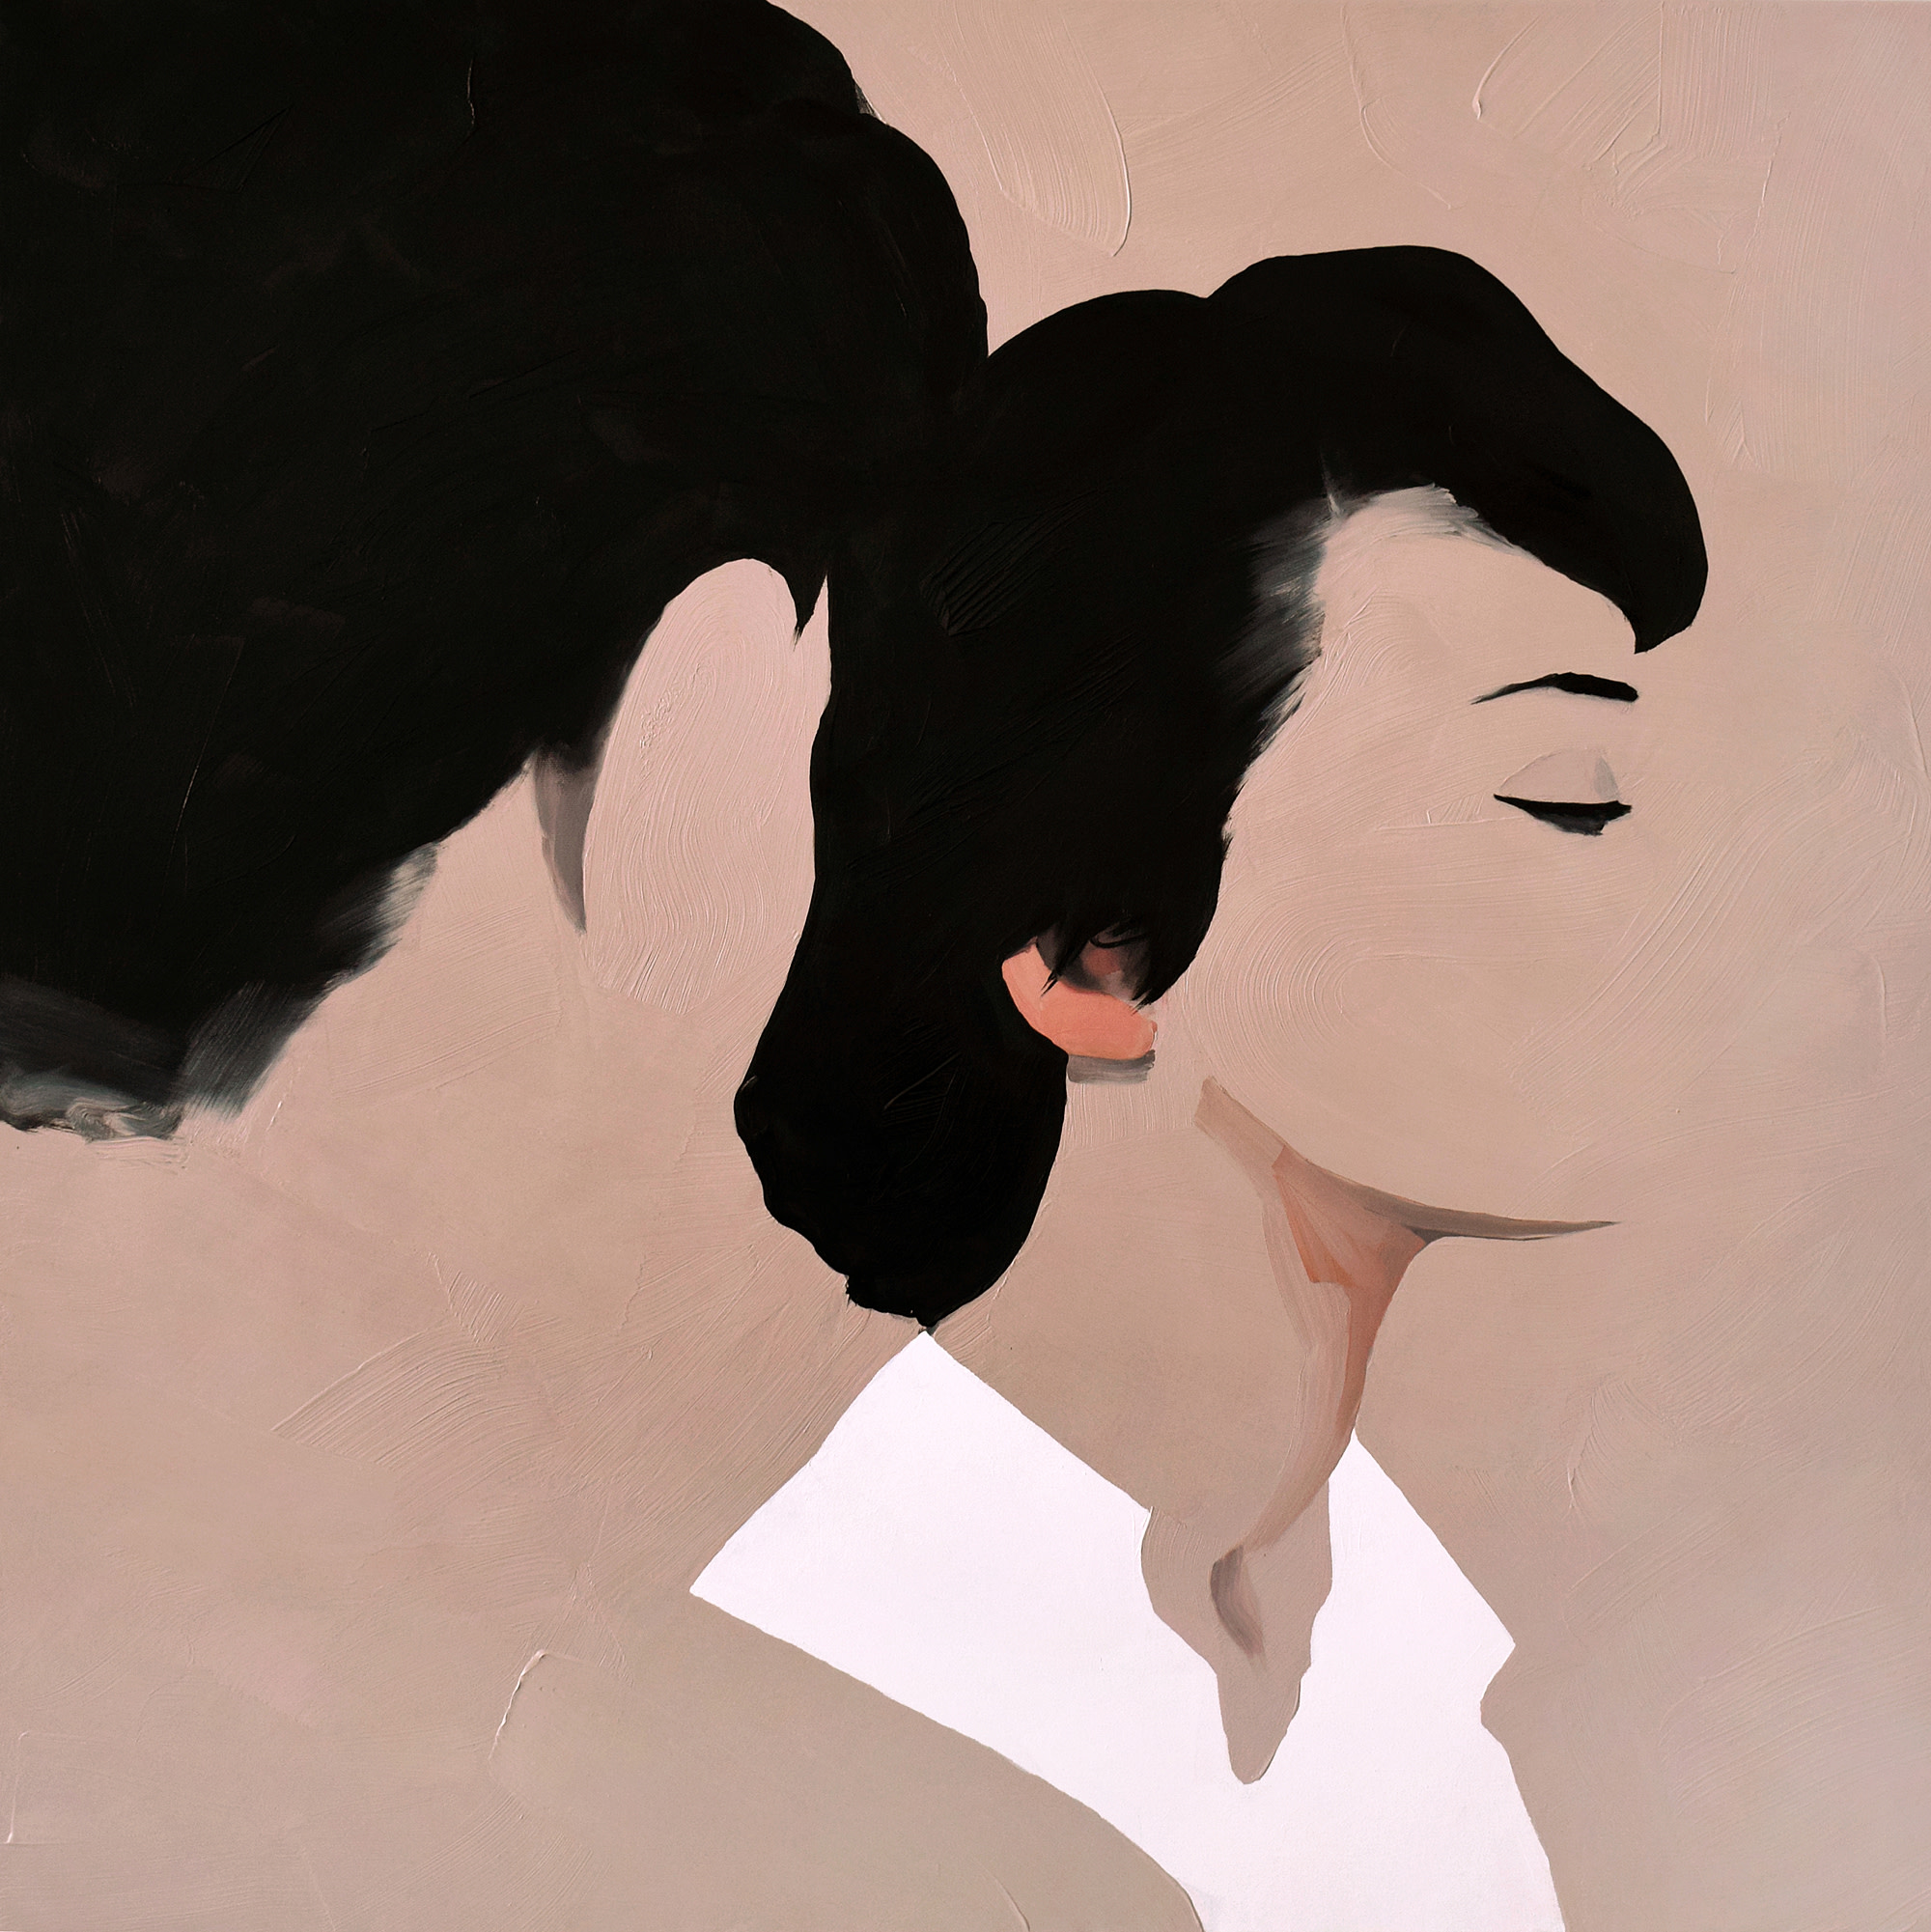 "<span class=""link fancybox-details-link""><a href=""/artists/54-jarek-puczel/works/335-jarek-puczel-lovers/"">View Detail Page</a></span><div class=""artist""><strong>Jarek Puczel</strong></div> <div class=""title""><em>Lovers</em></div> <div class=""medium"">Oil on Canvas</div> <div class=""dimensions"">36 x 36 inches </div>"